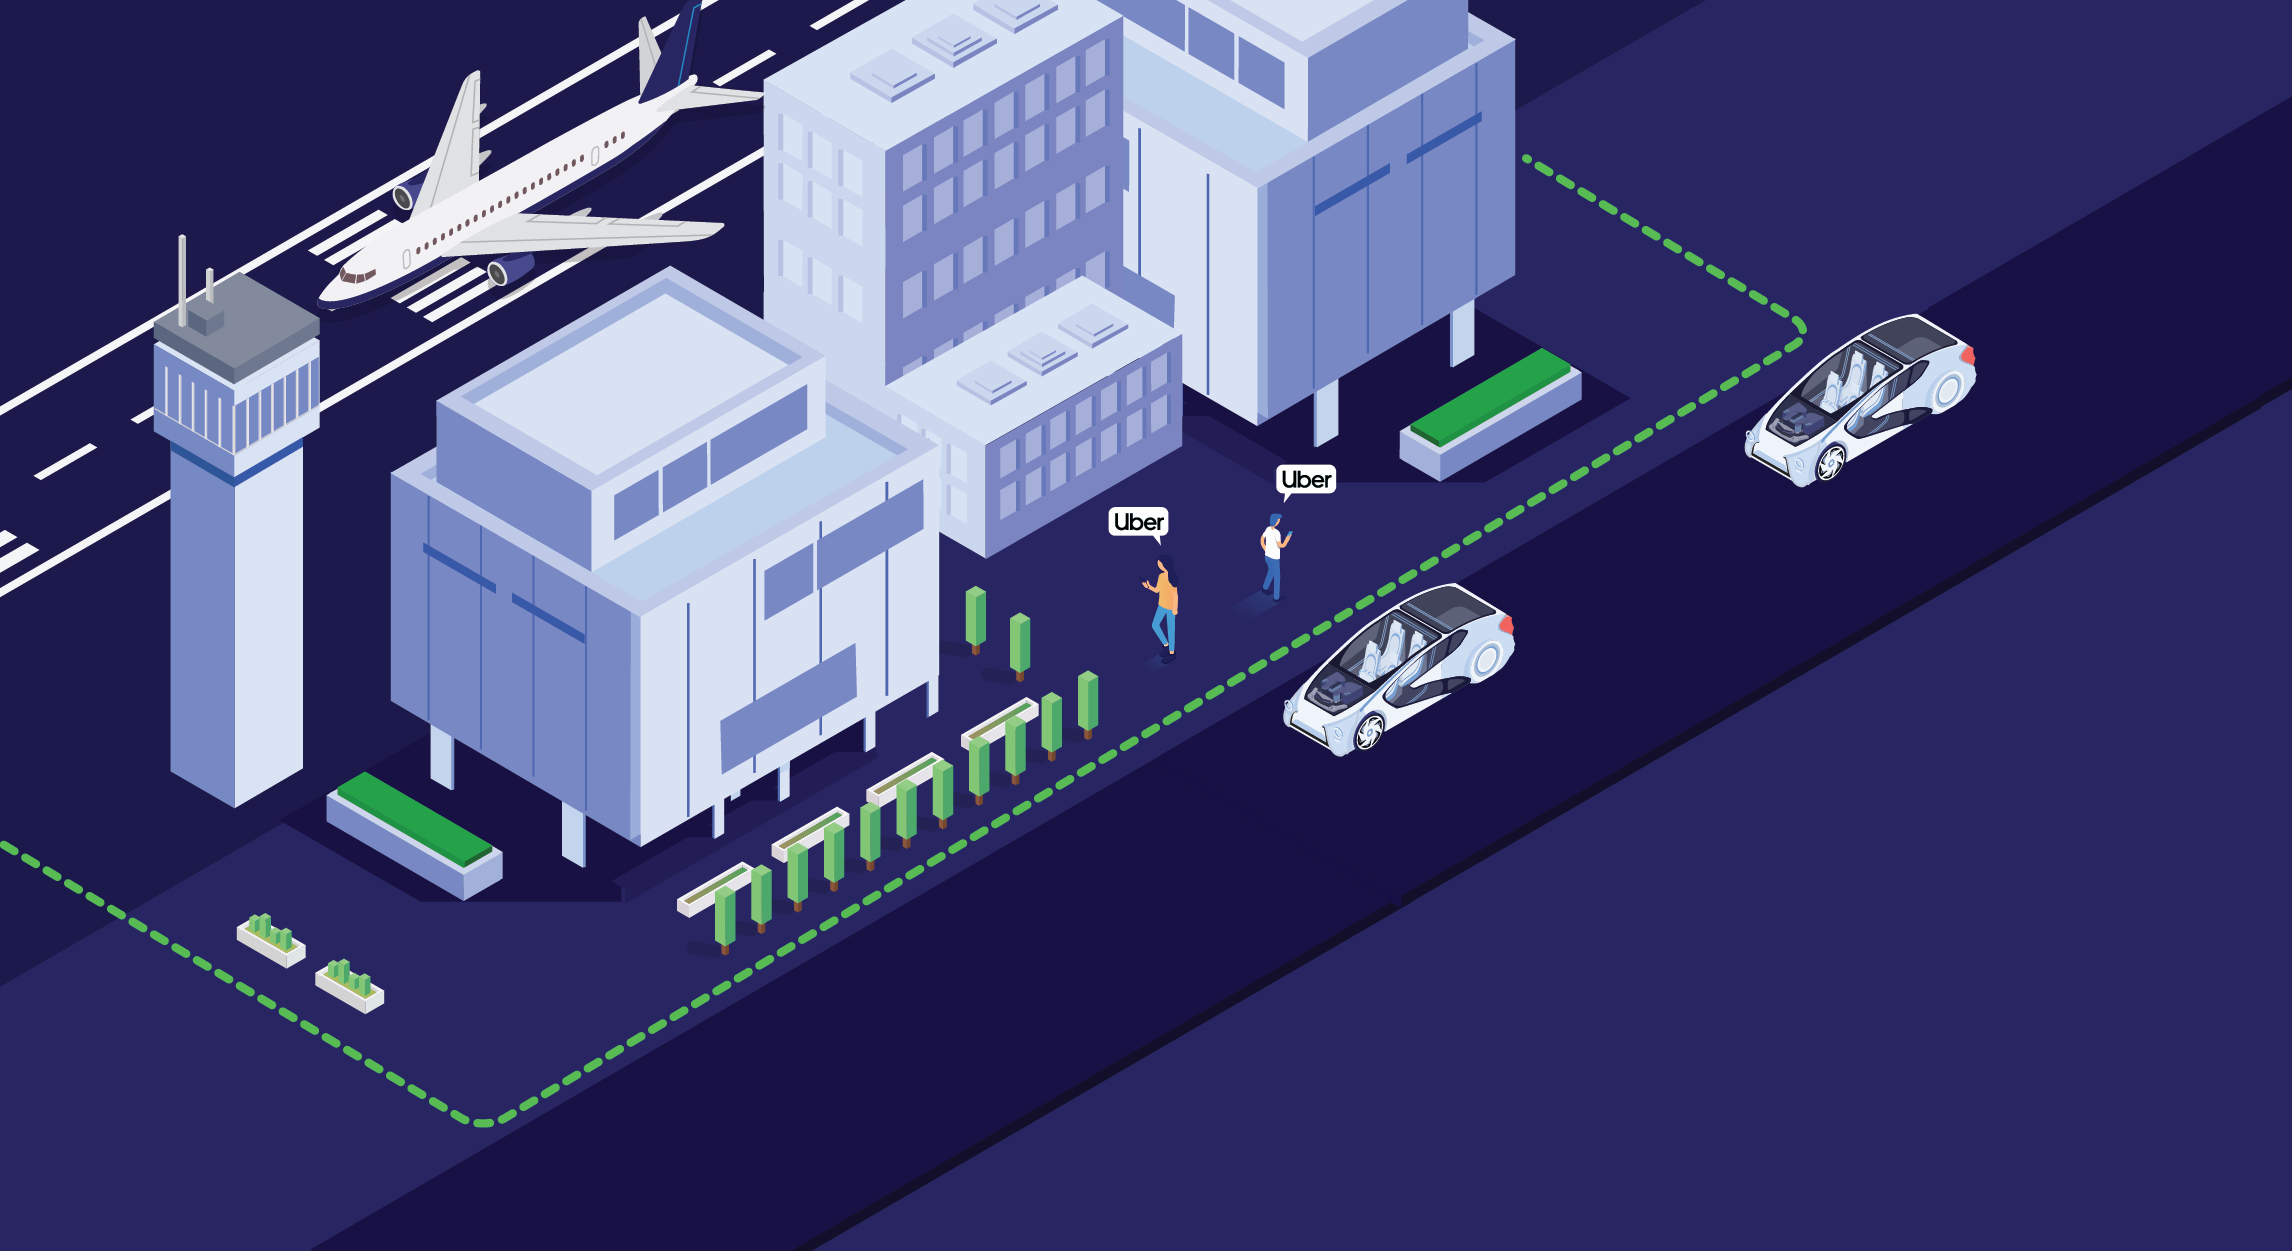 illustration of an airport with a radius drawn around it and uber cars using geofencing to target travellers